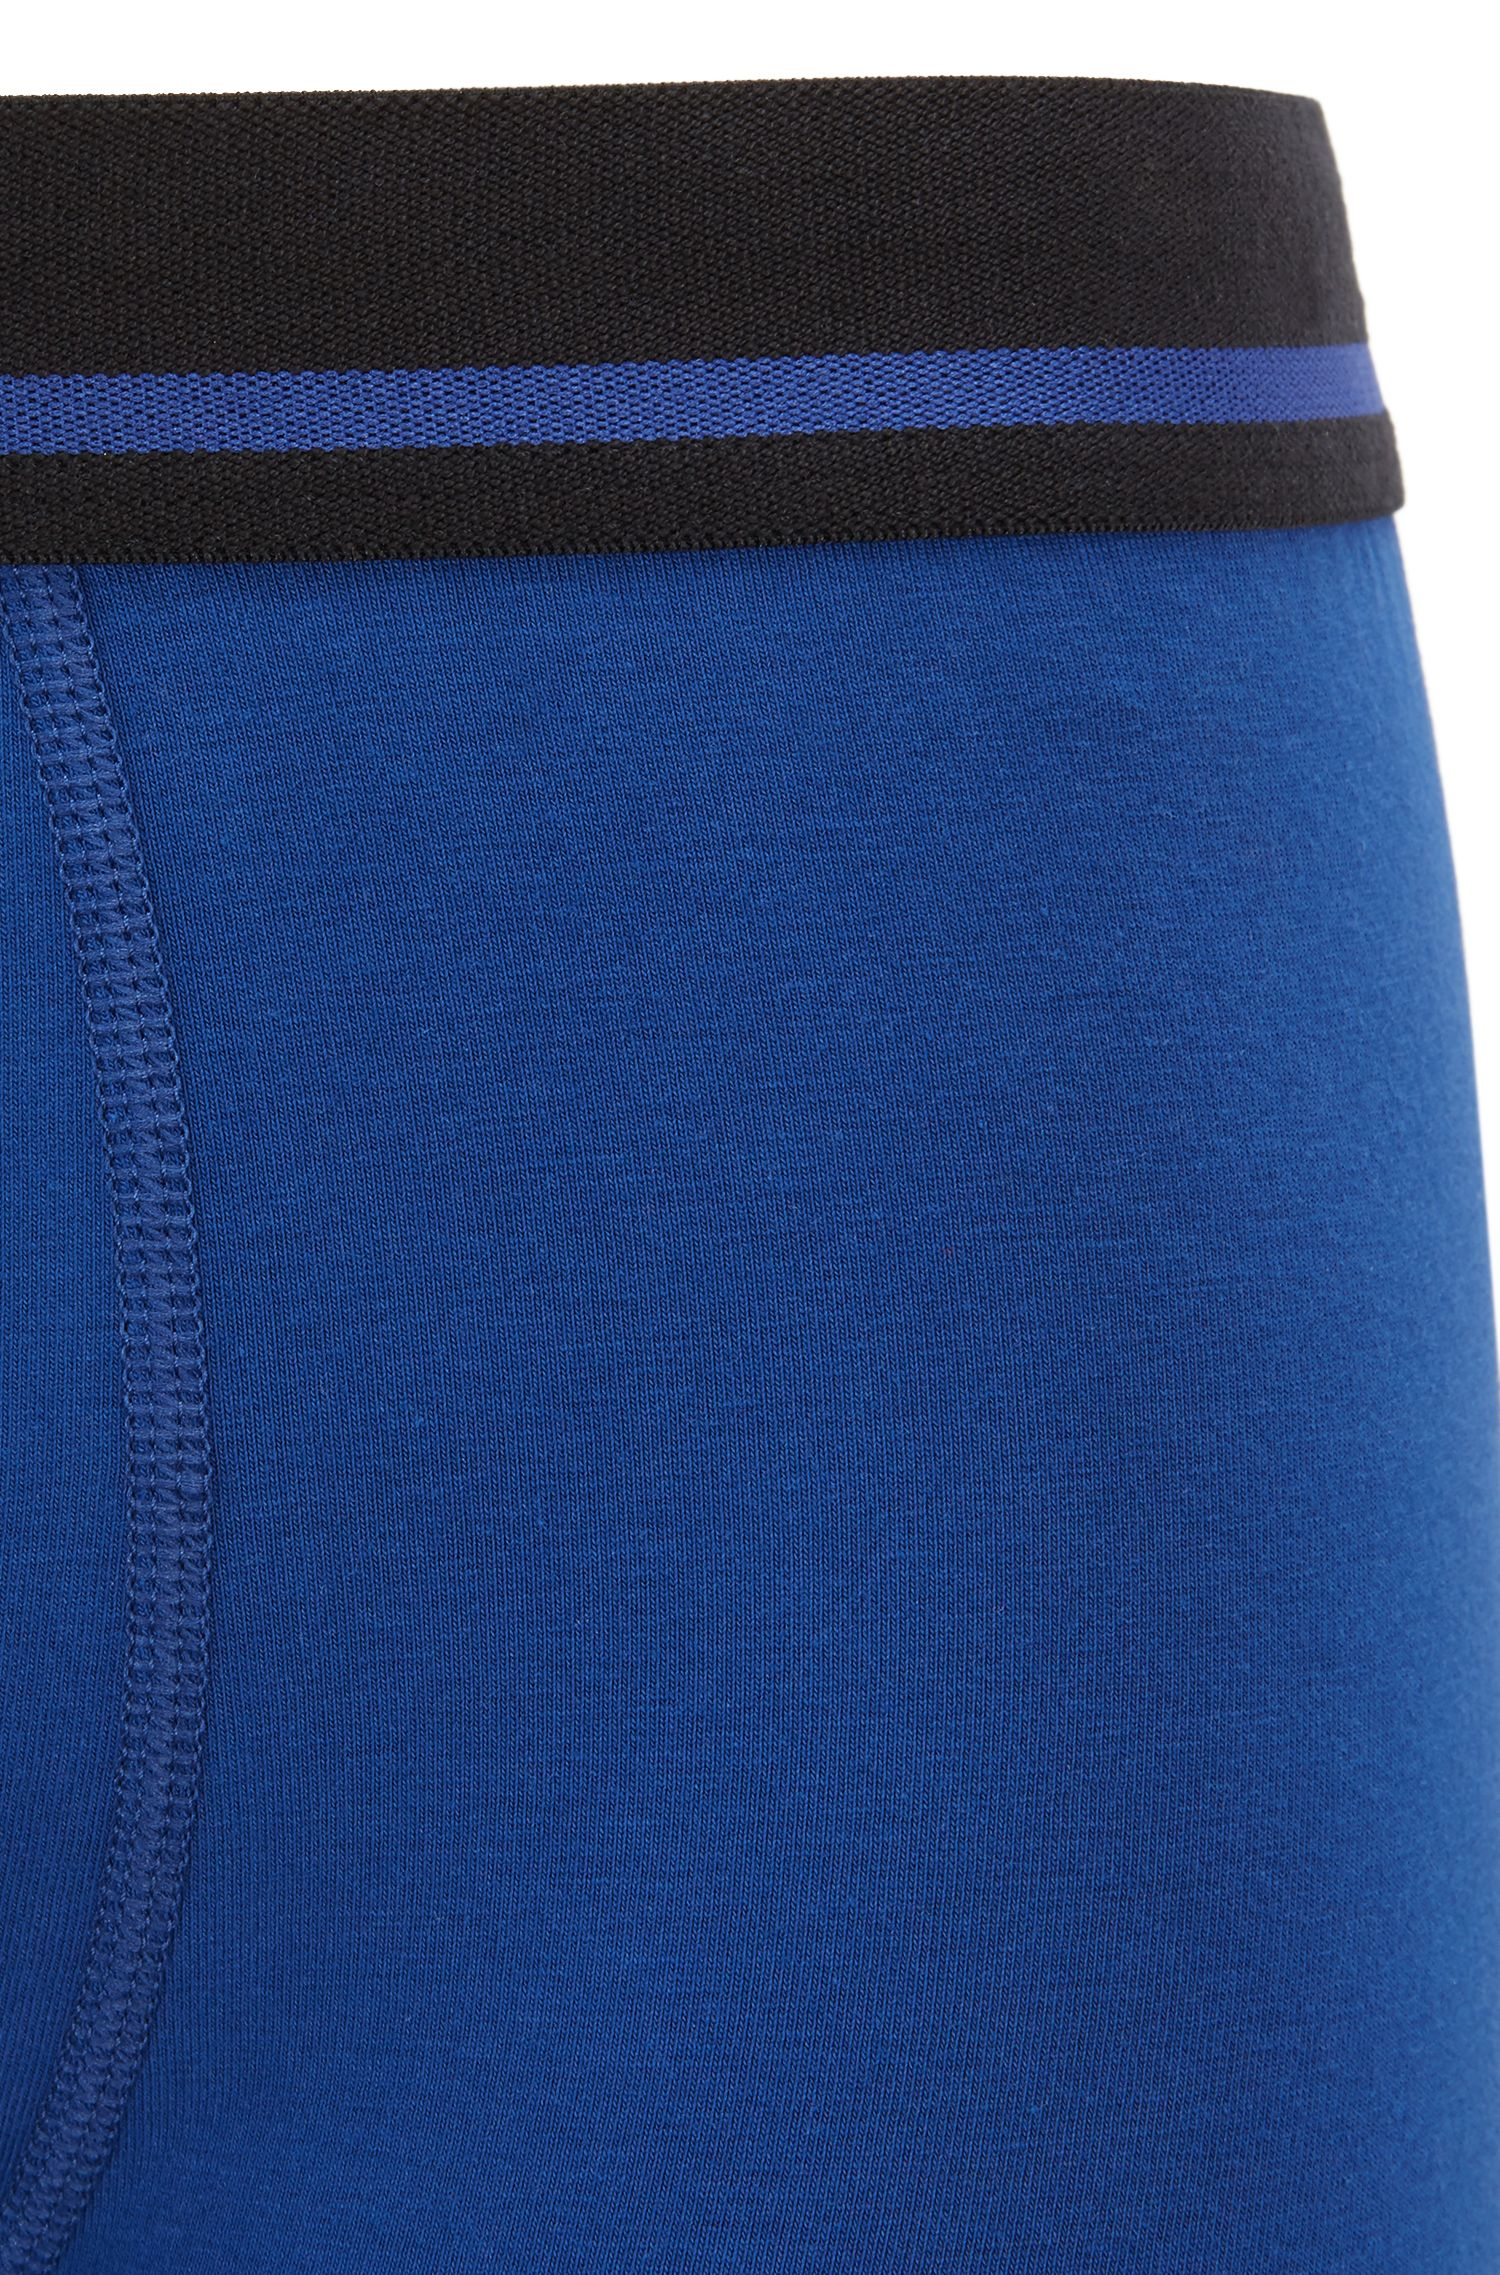 Boxershorts aus Single Jersey, Blau